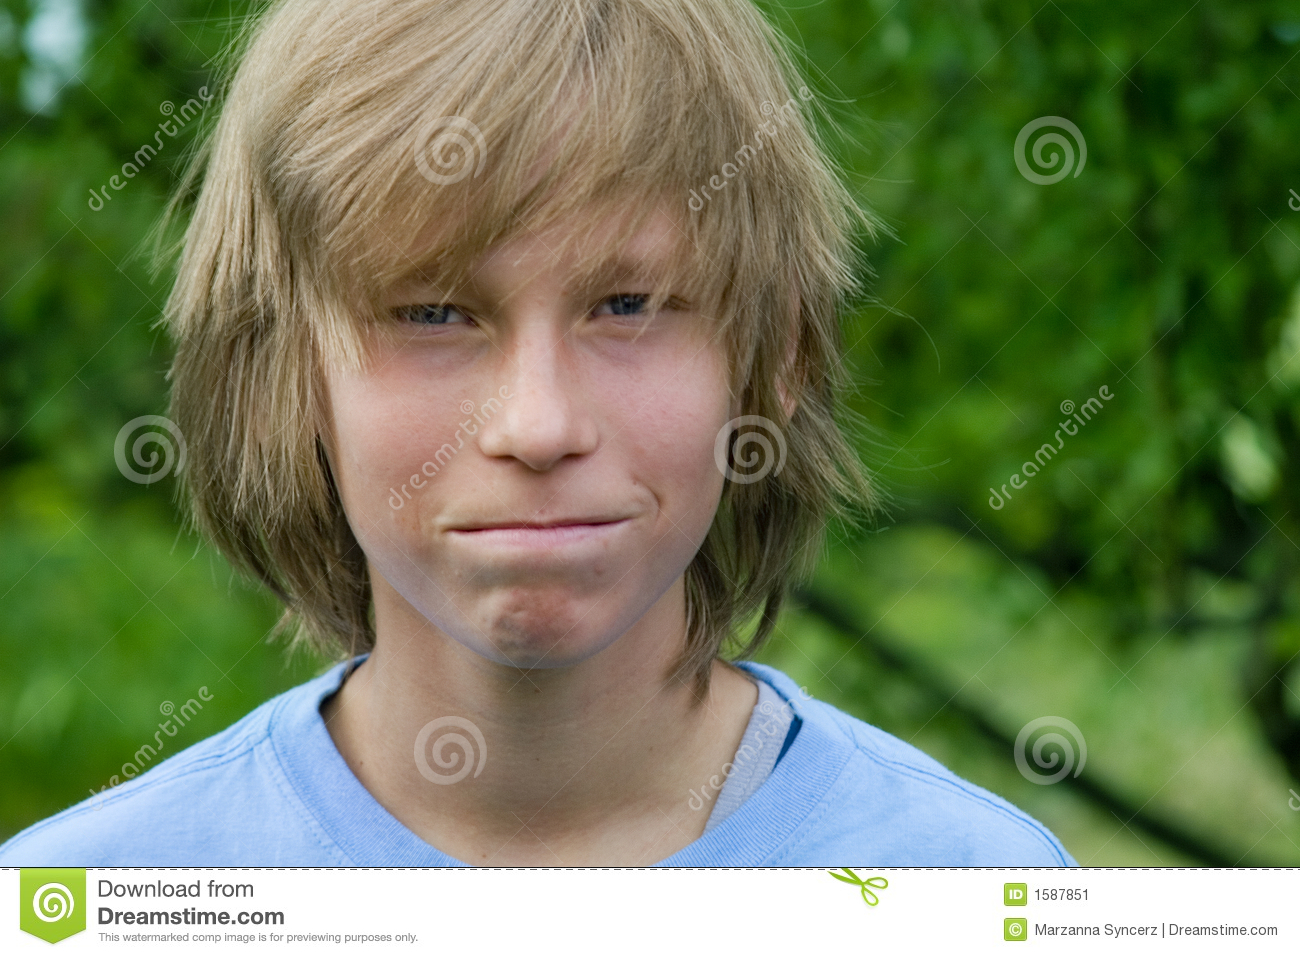 Close-Mouthed Teen Boy Stock Image - Image: 1587851